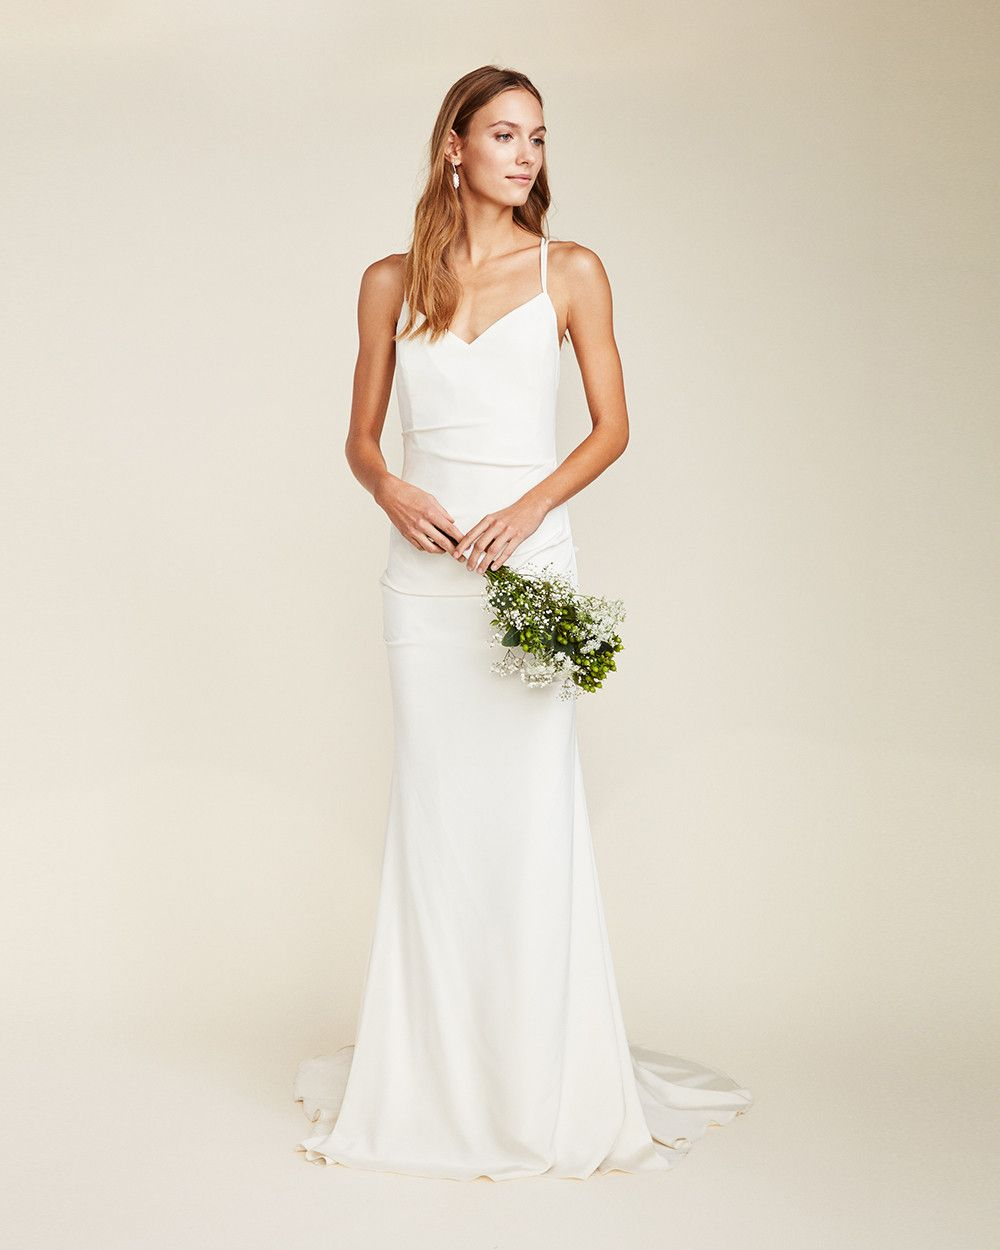 Celine bridal gown our celine gown is made from luxurious